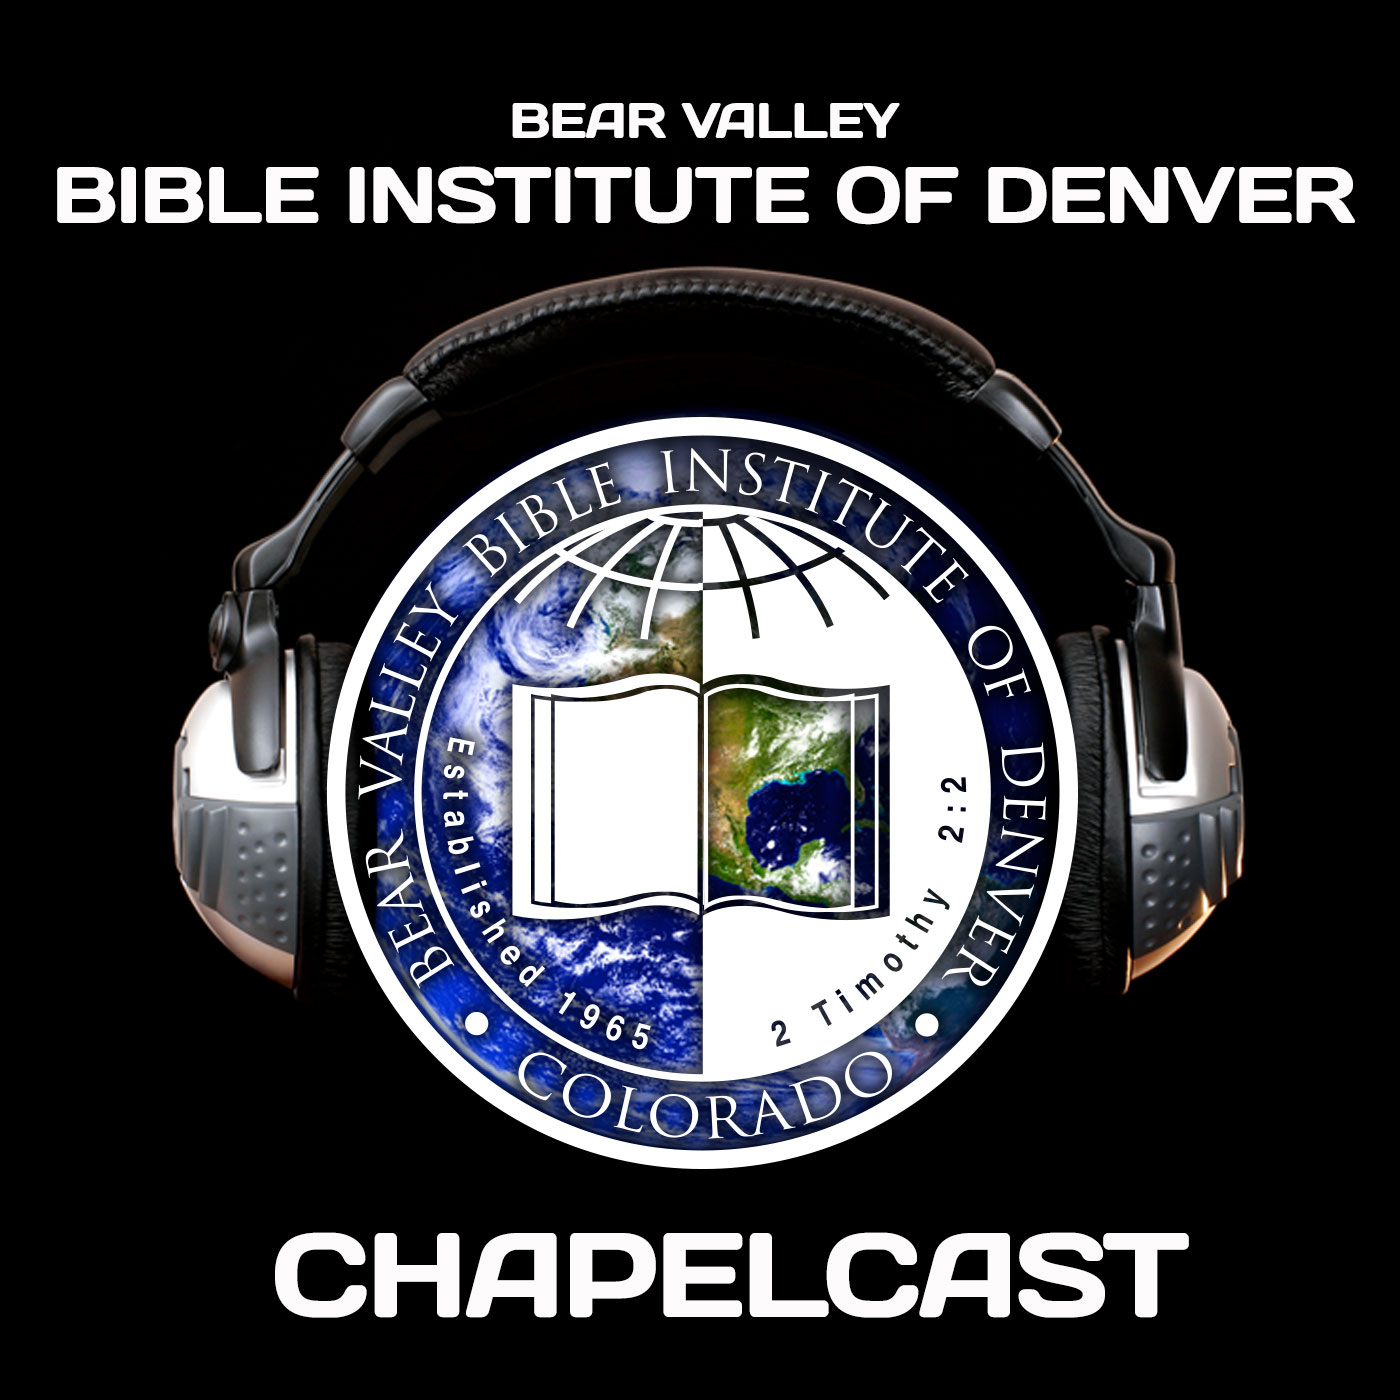 Chapelcast - Bear Valley Bible Institute International